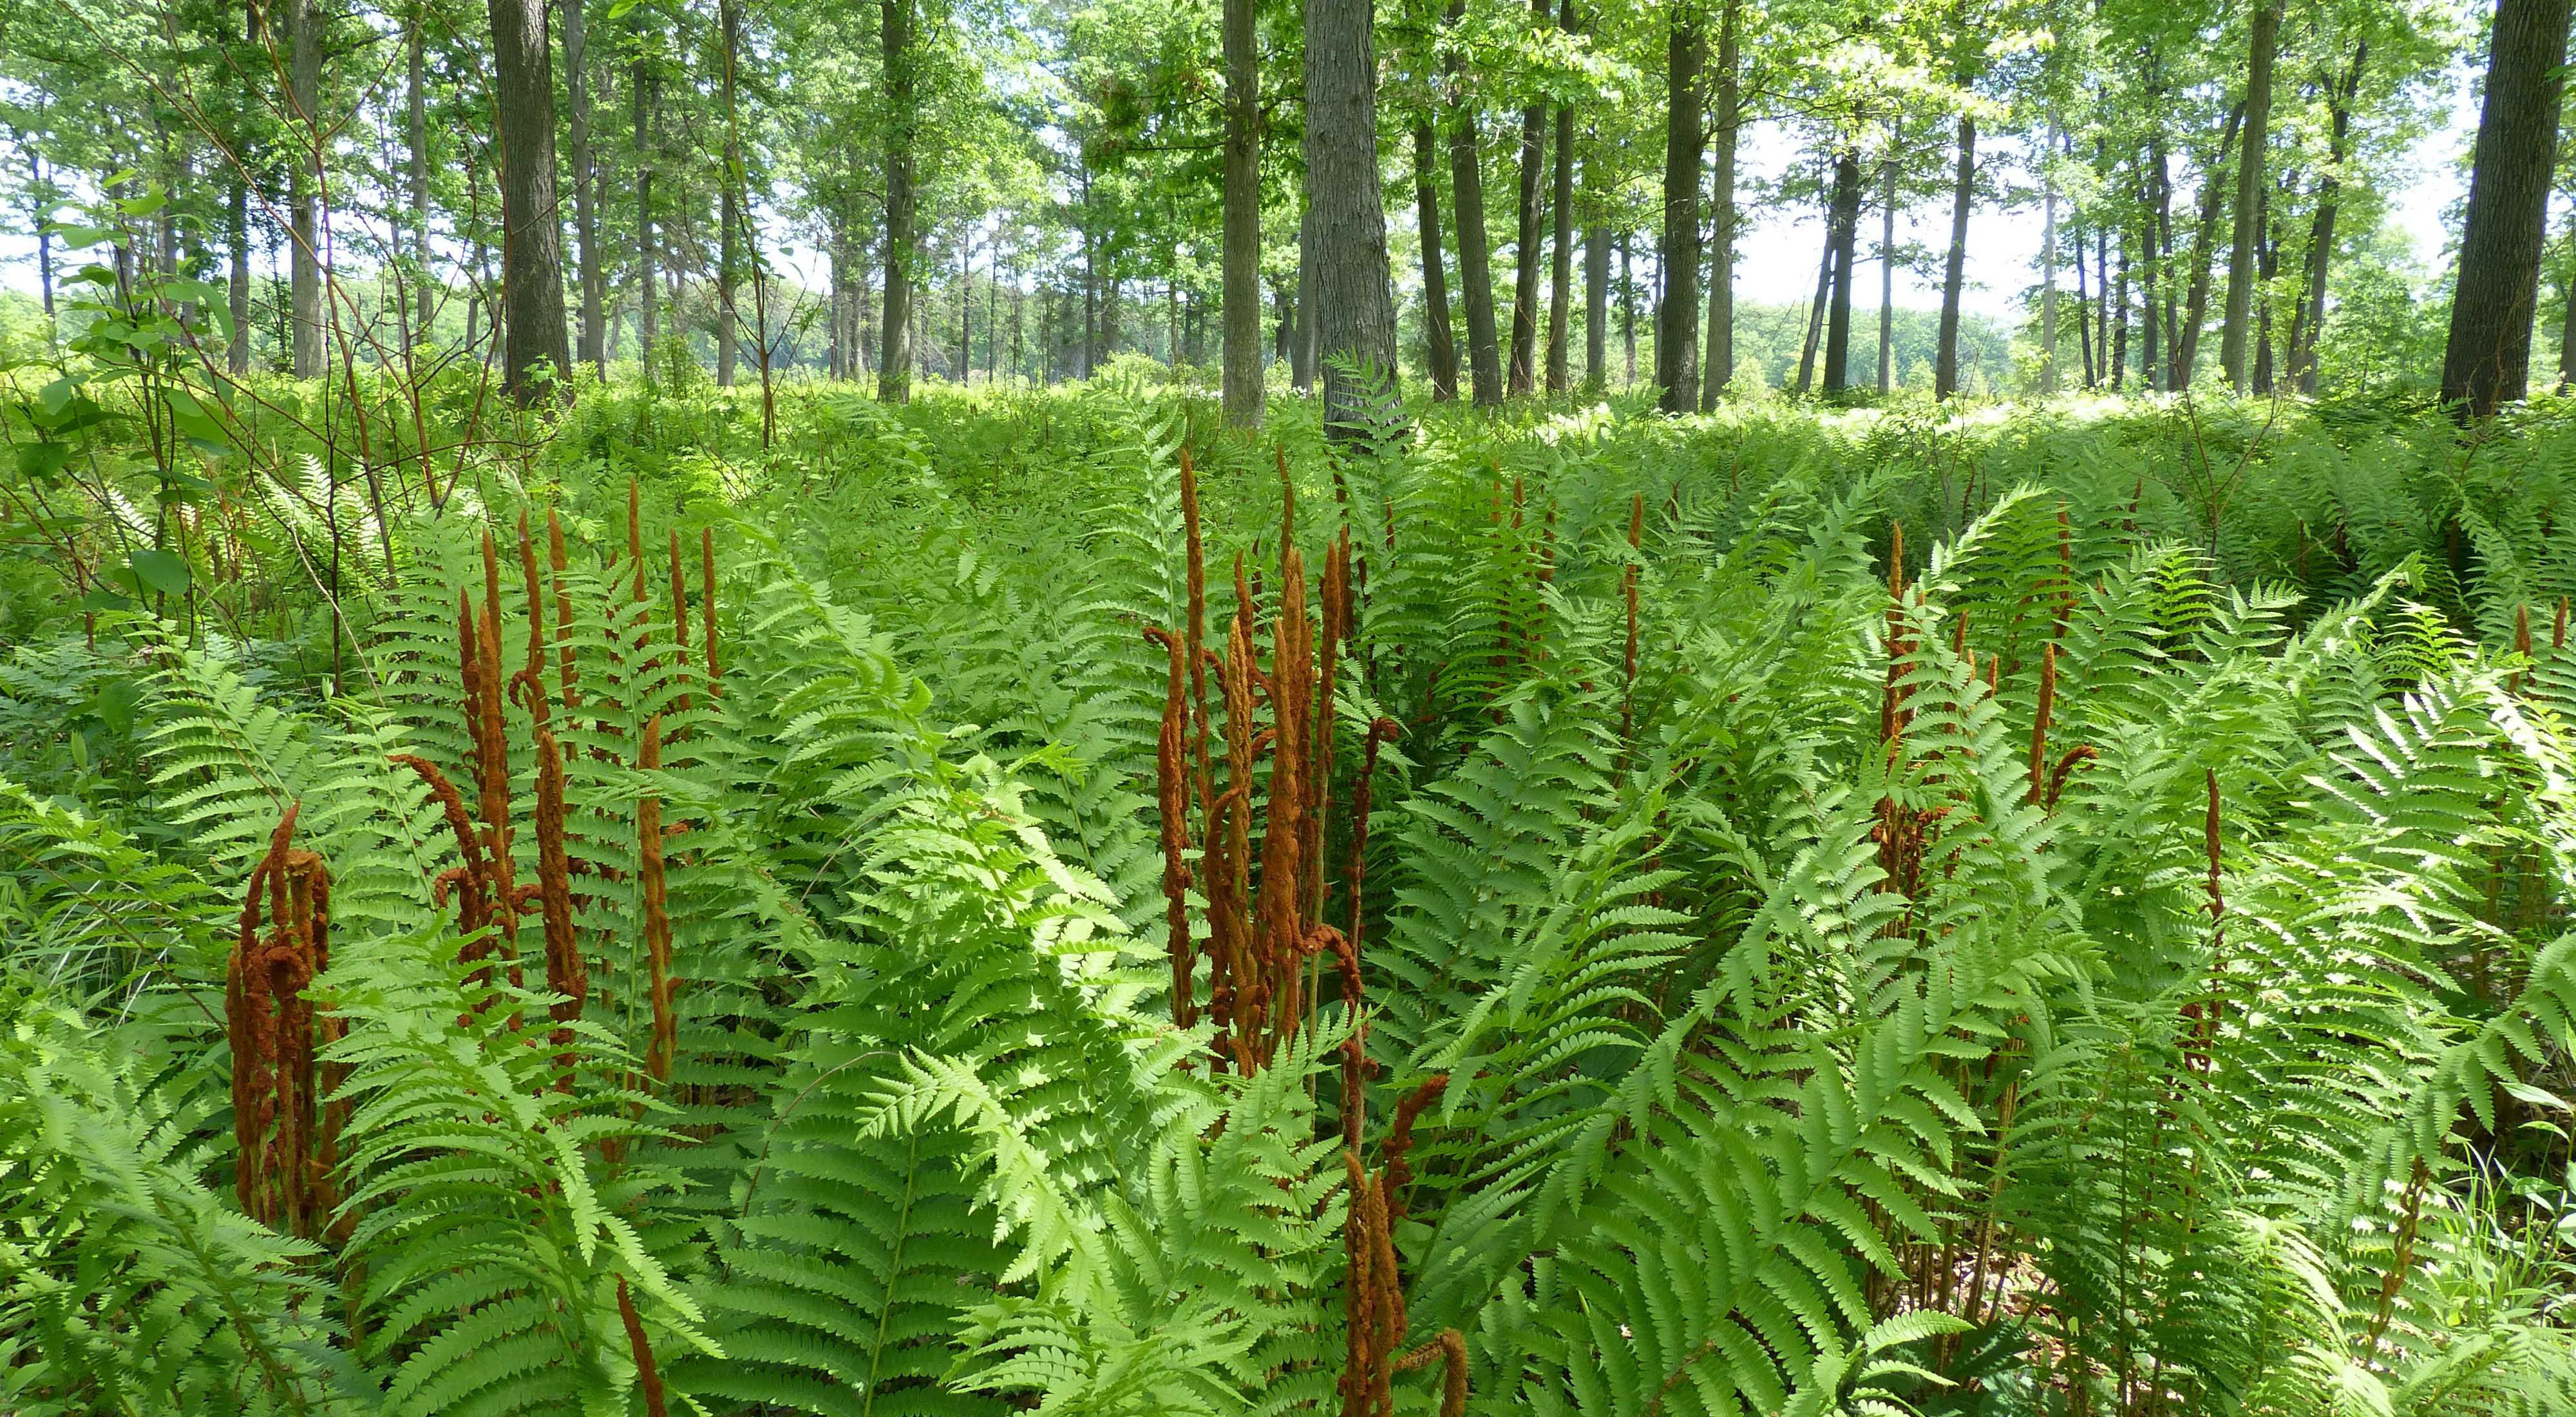 Looking through a sun kissed forest of tall trees, the forest floor covered with lush ferns, cinnamon colored spikes jutting up from the green foliage.